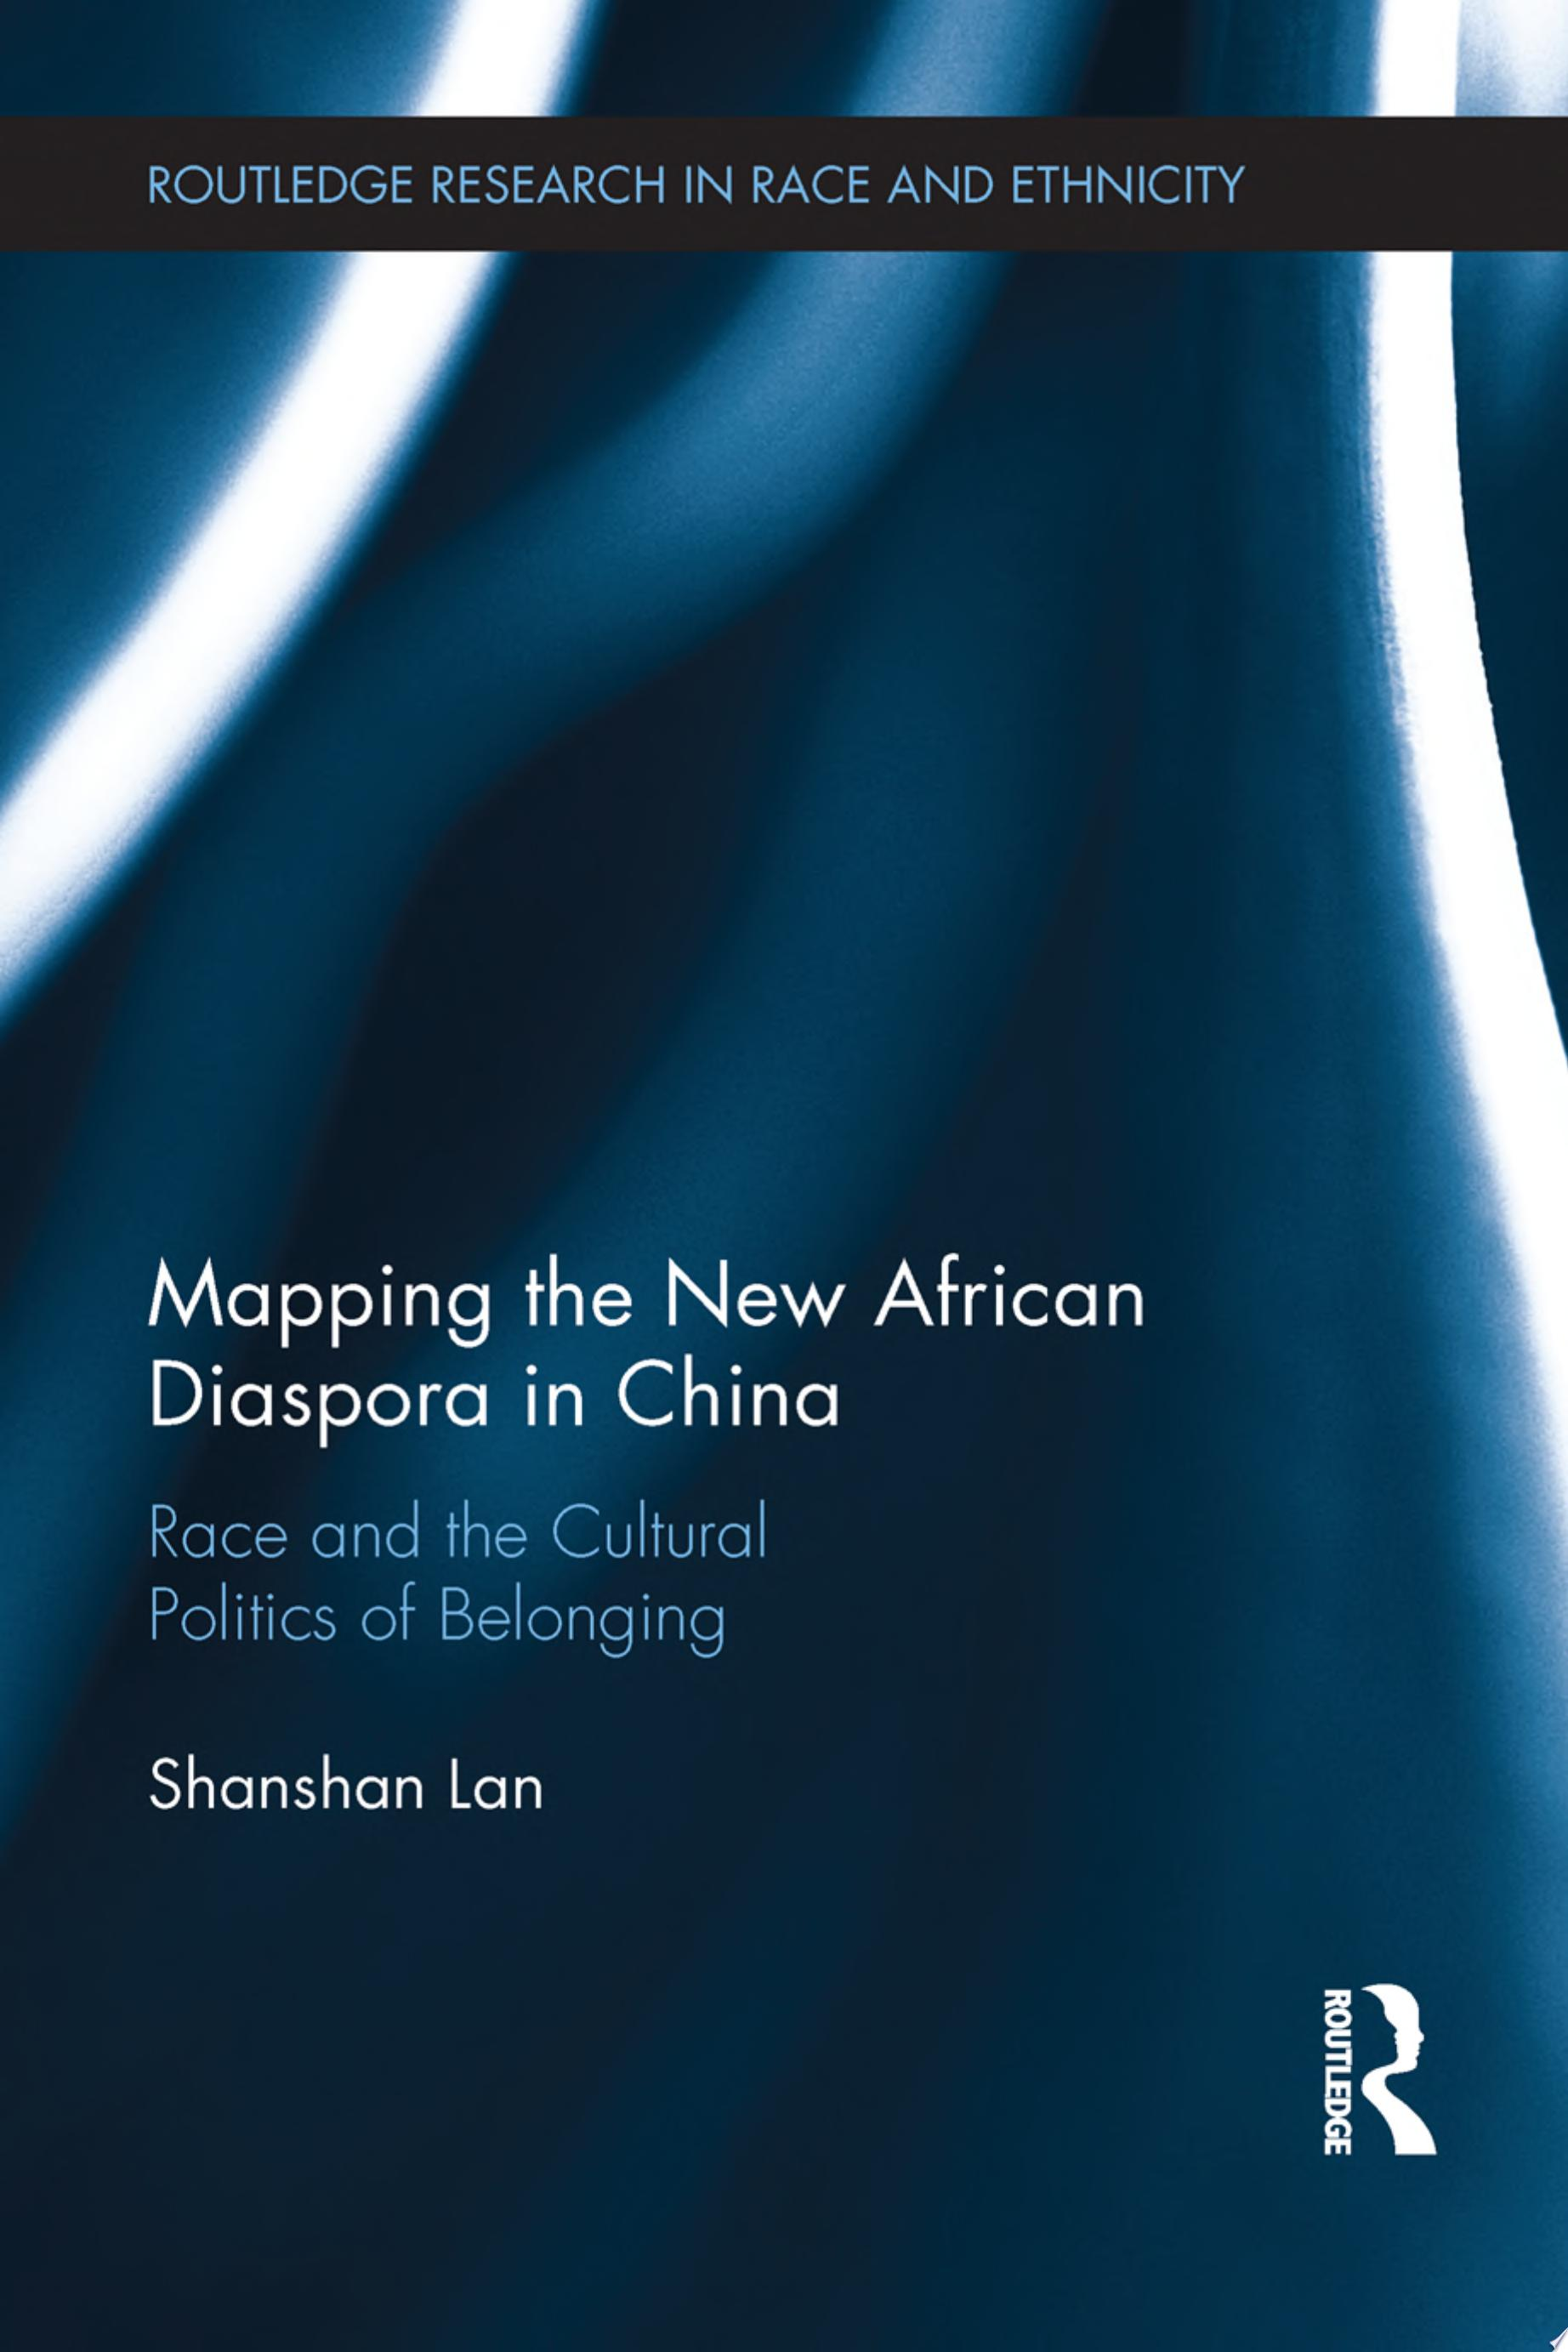 Mapping the New African Diaspora in China